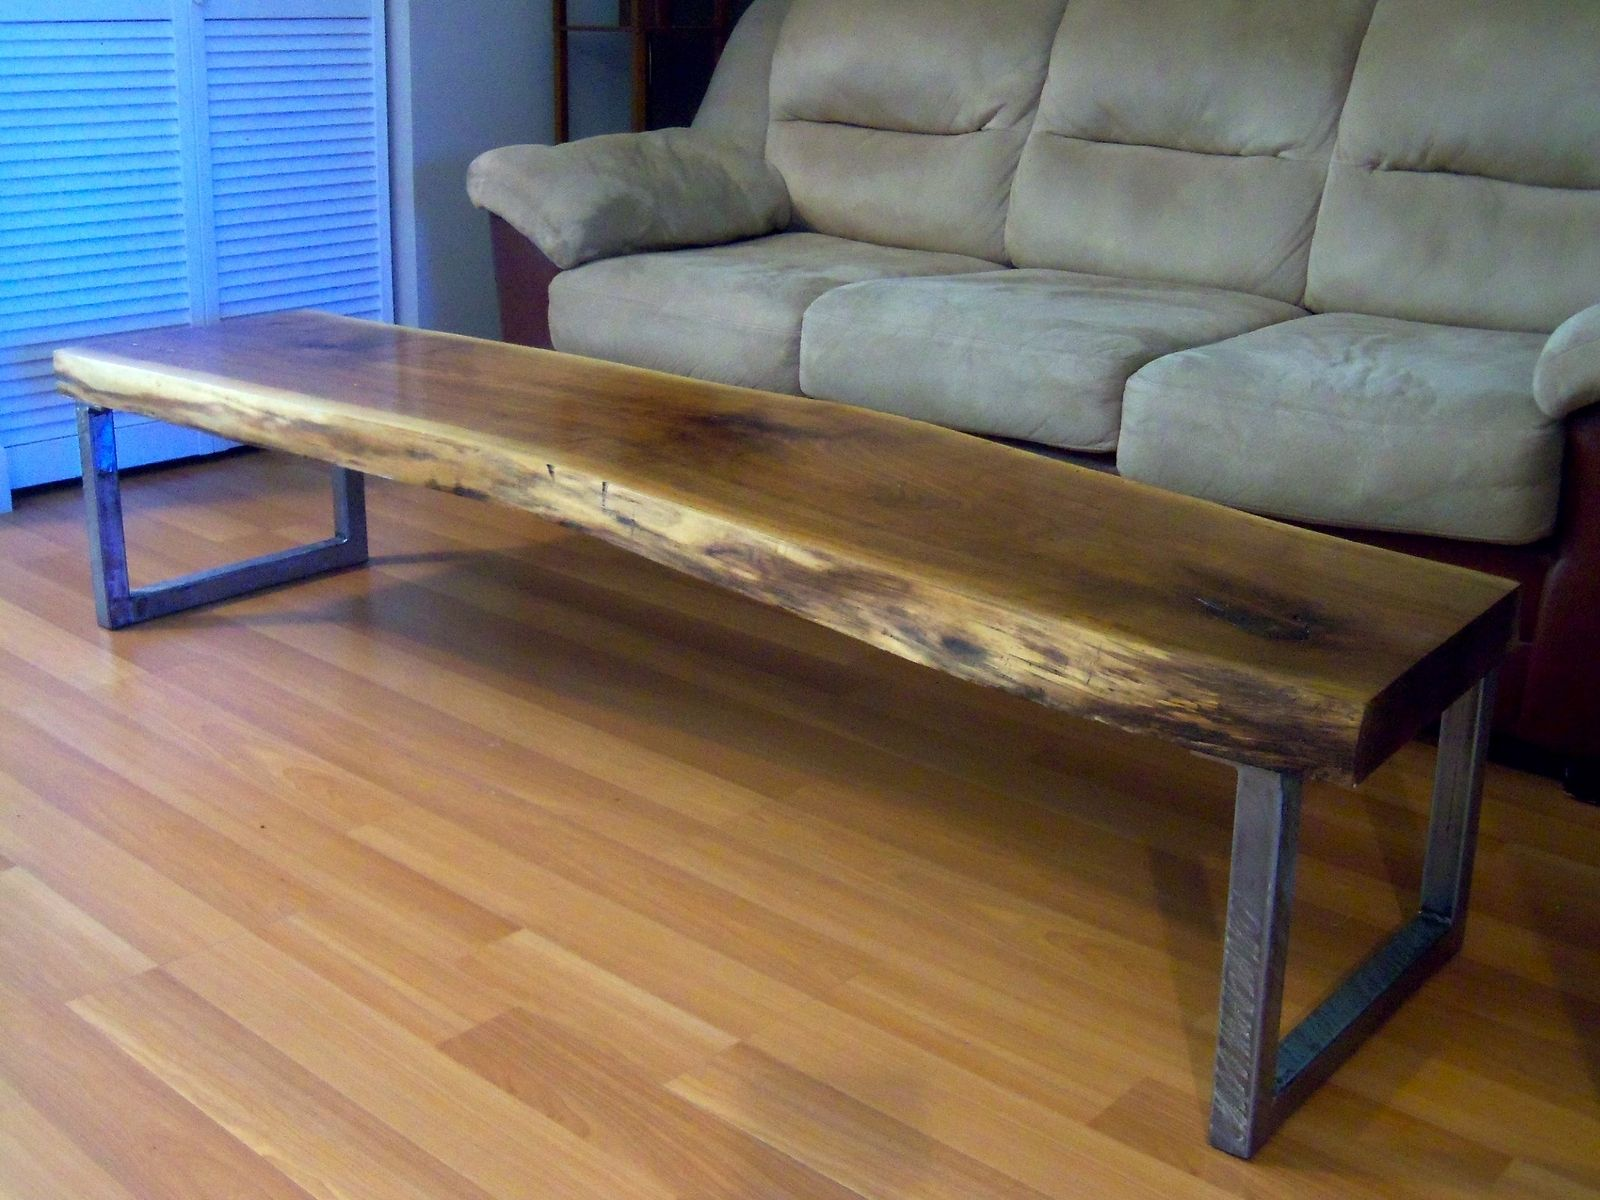 Hand Made Live Edge Black Walnut Coffee Table With Square Legs By